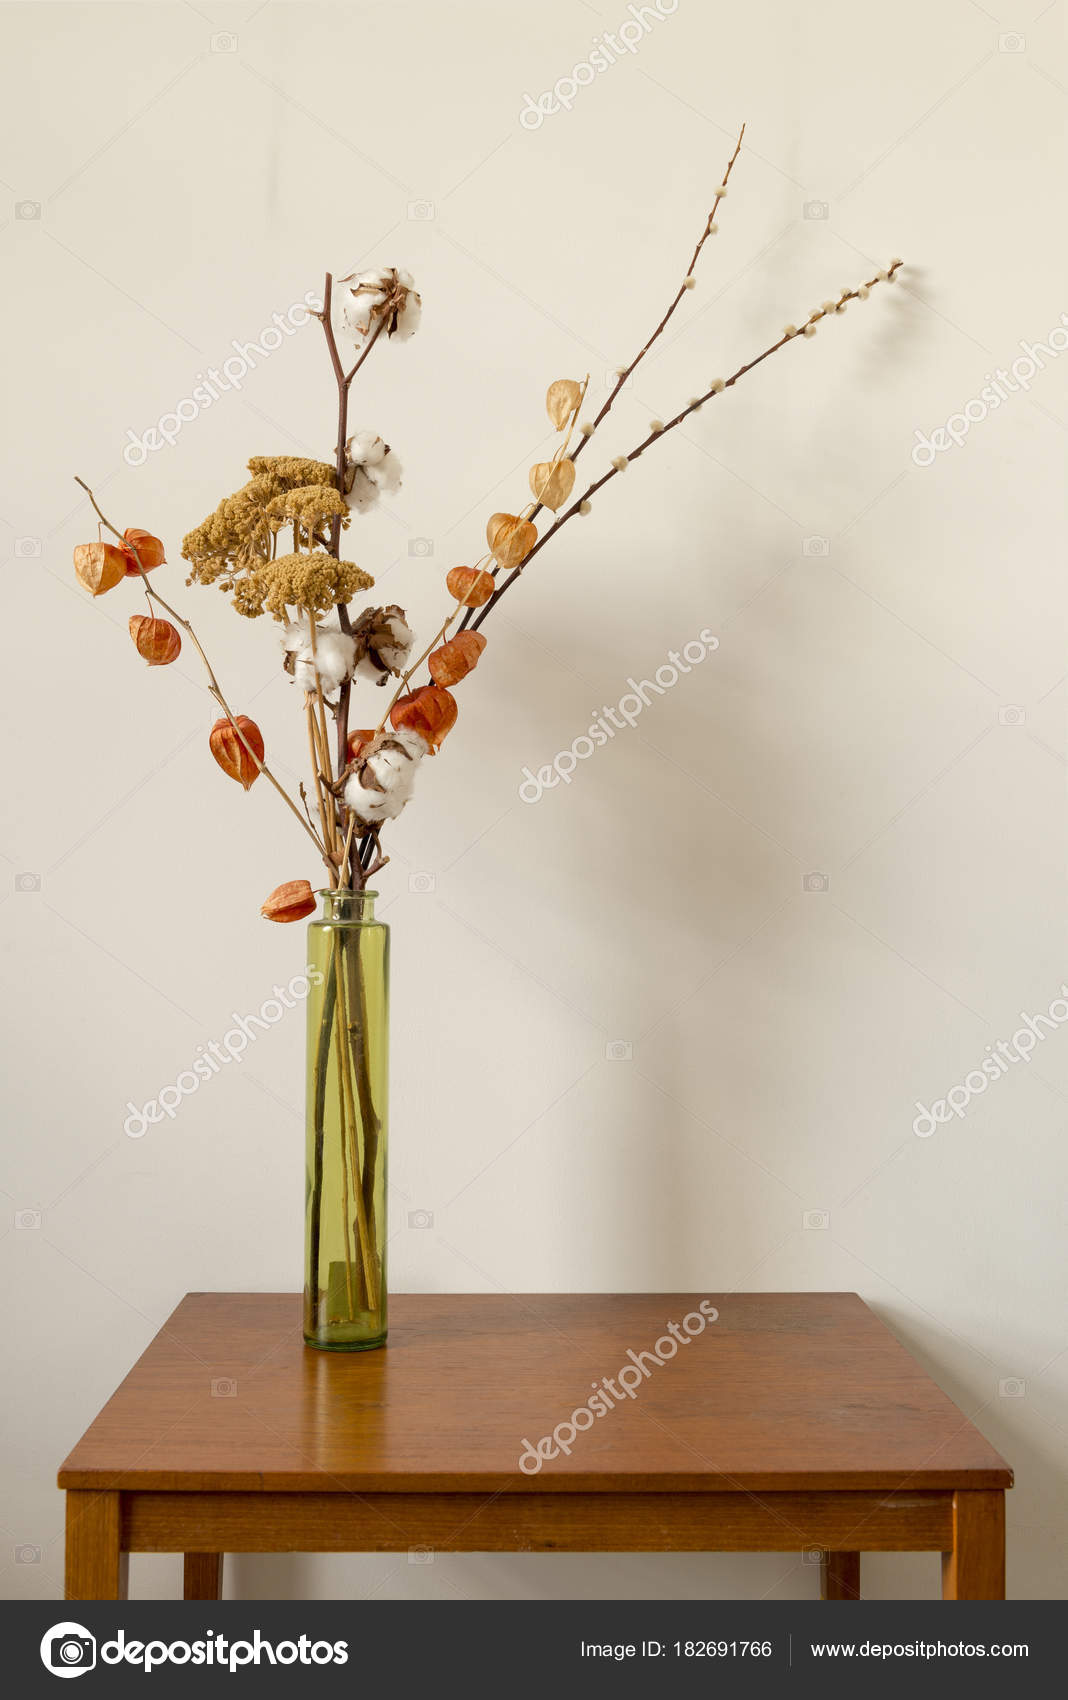 Glass Vase with Dried Flowers on a Wooden Table over White Backg ...